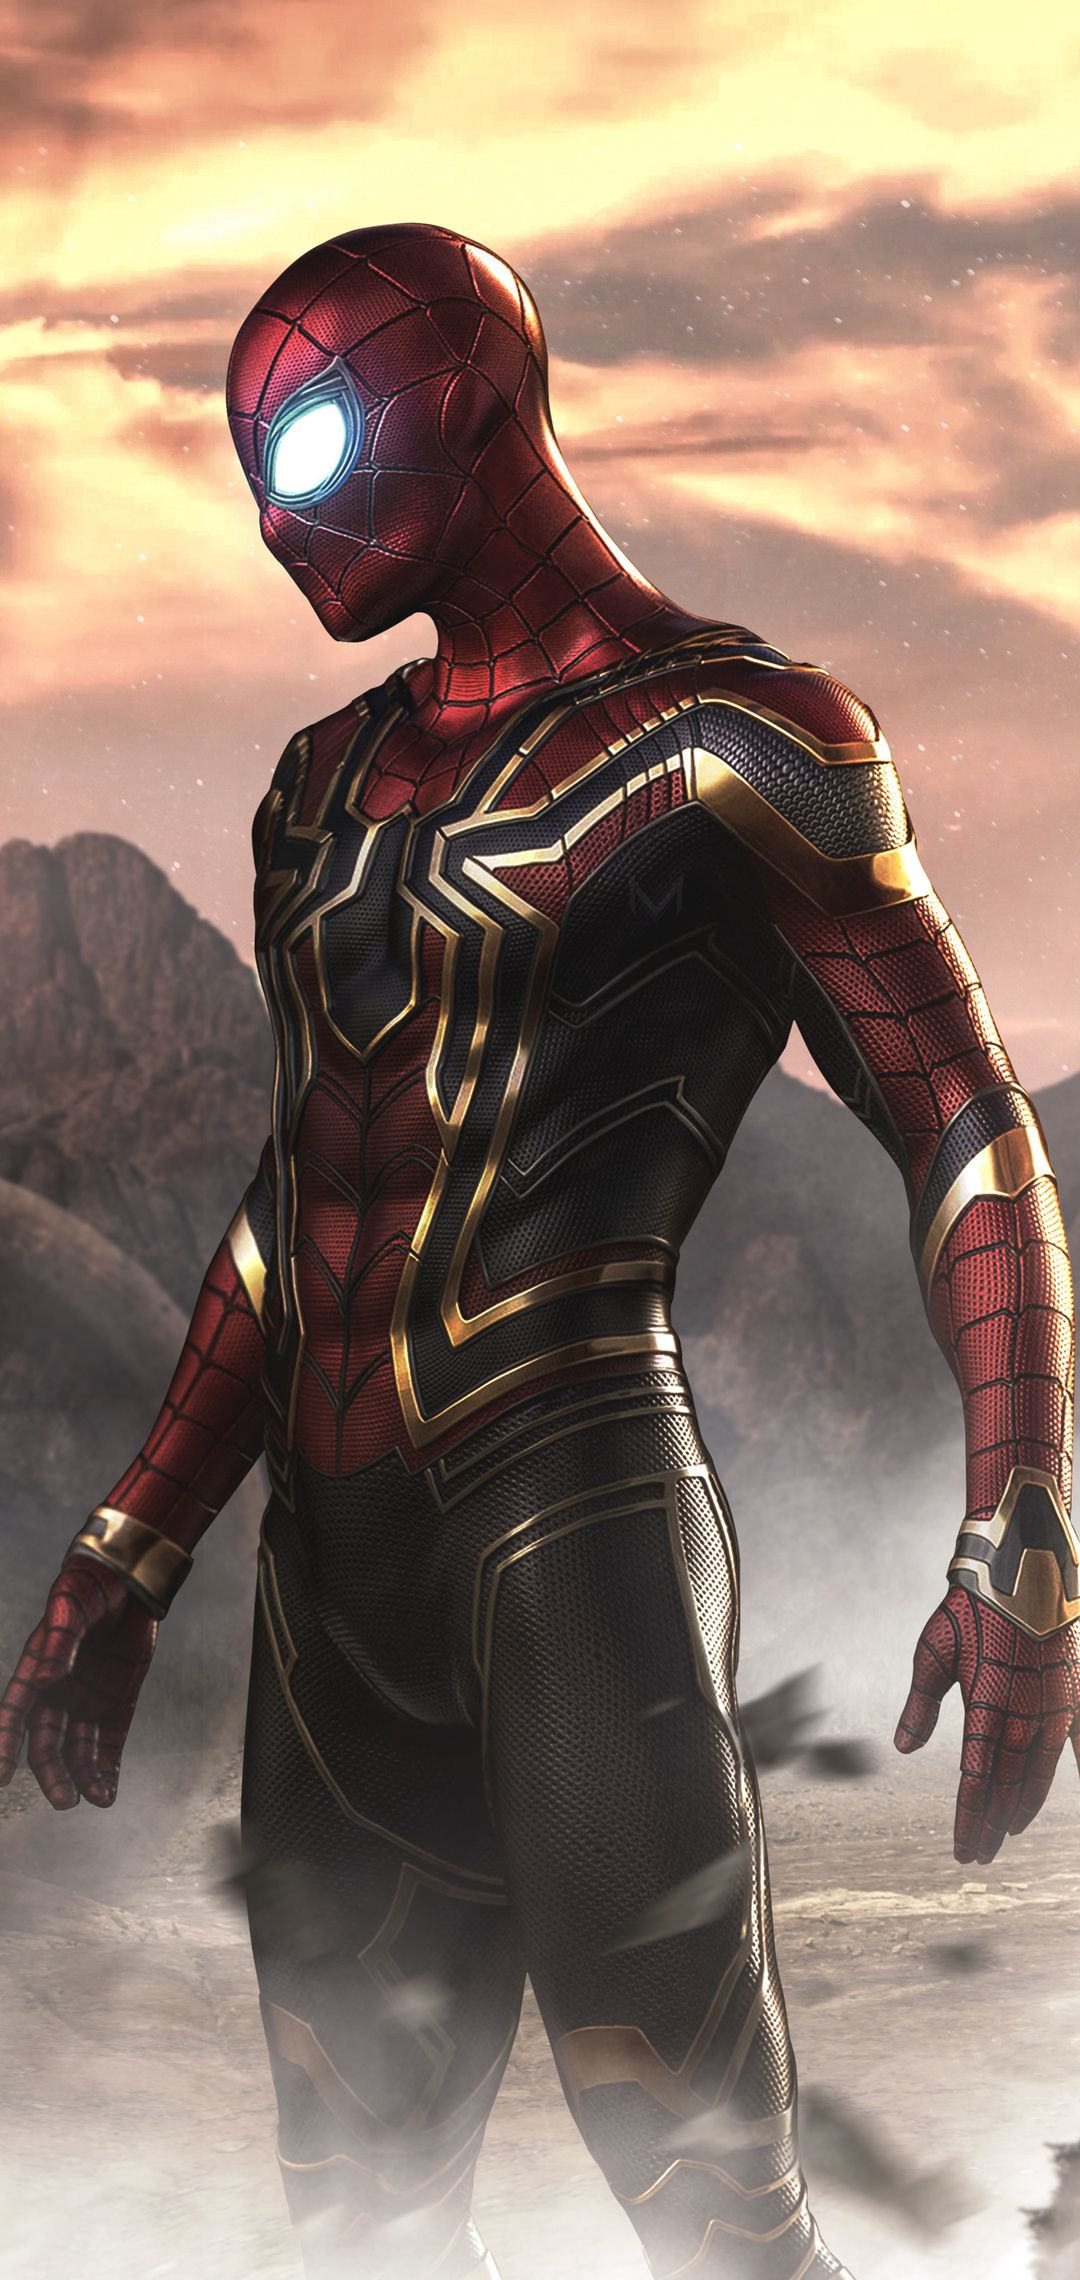 Spiderman Far From Home Movie In 1080x2280 Resolution Marvel